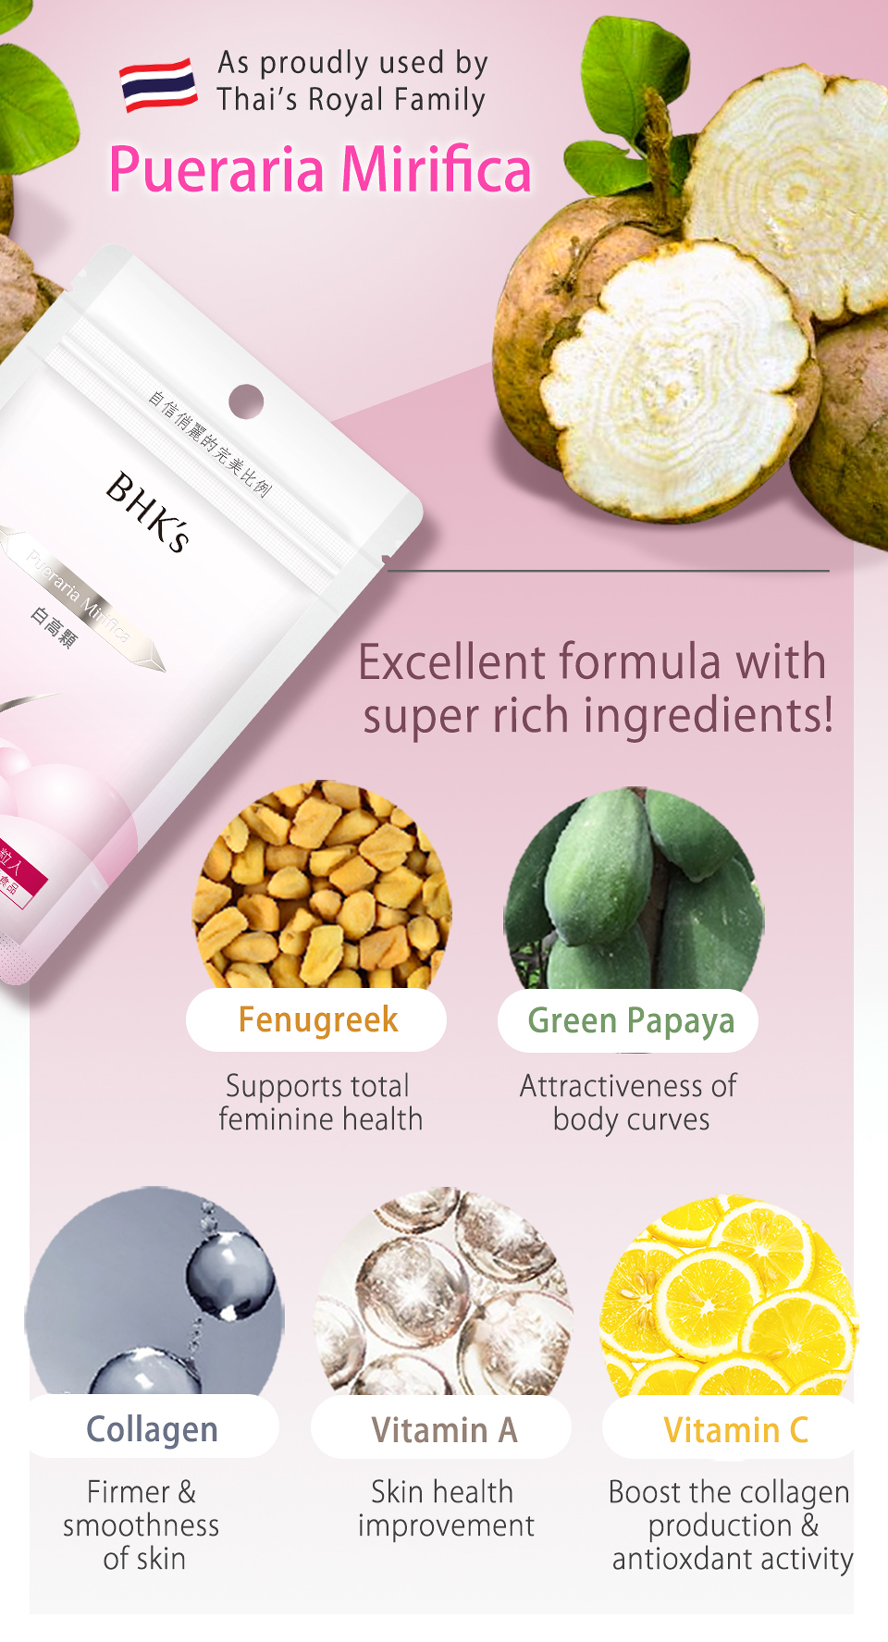 BHK's Pueraria Mirifica firms up and stimulates the growth of breast tissues just as a second youth